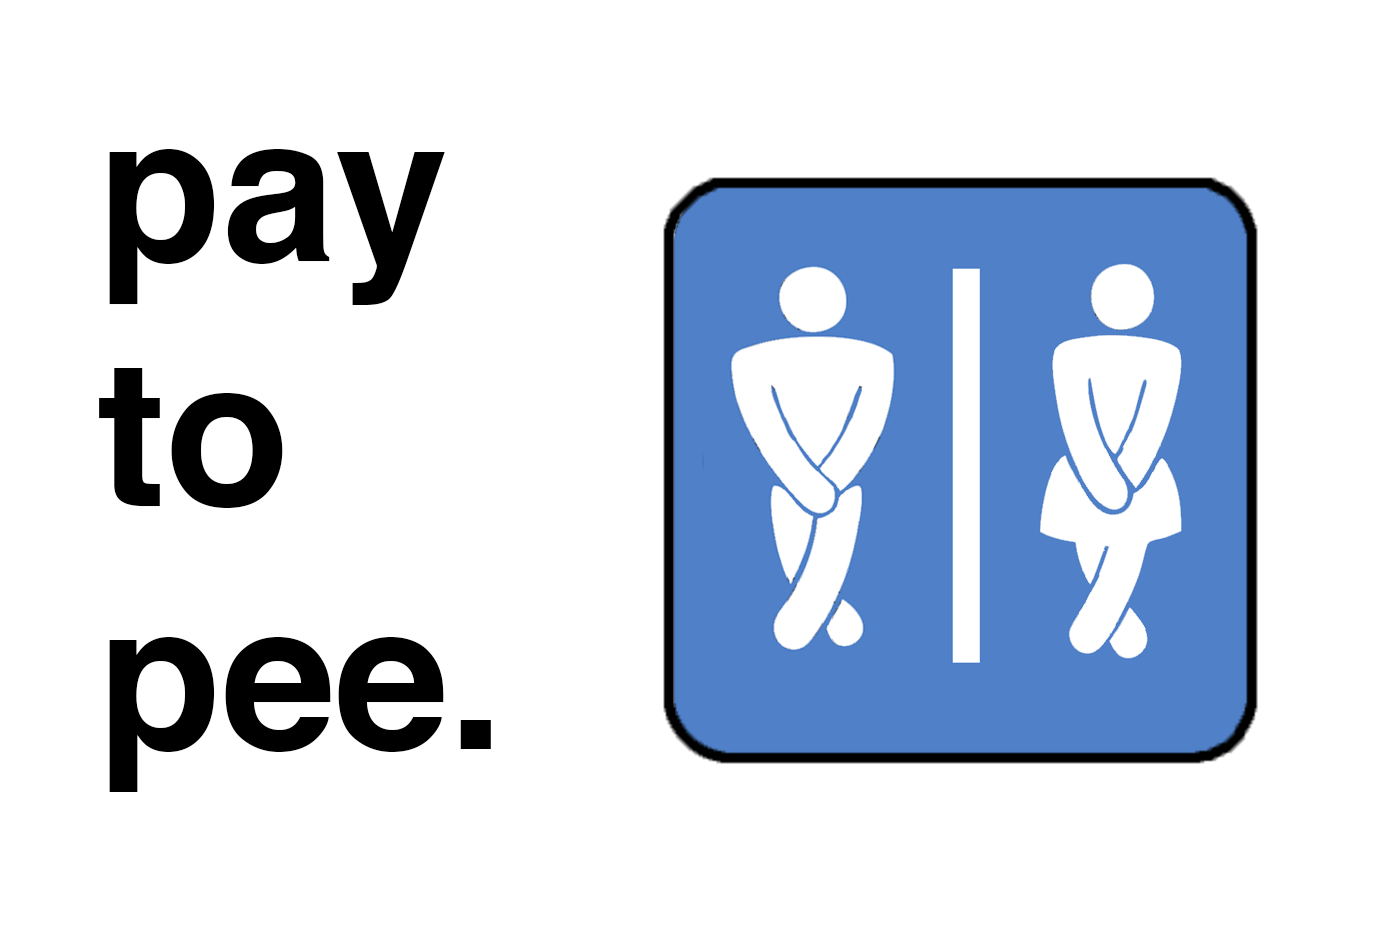 Many teachers require students to use extra credit points to go to the bathroom.